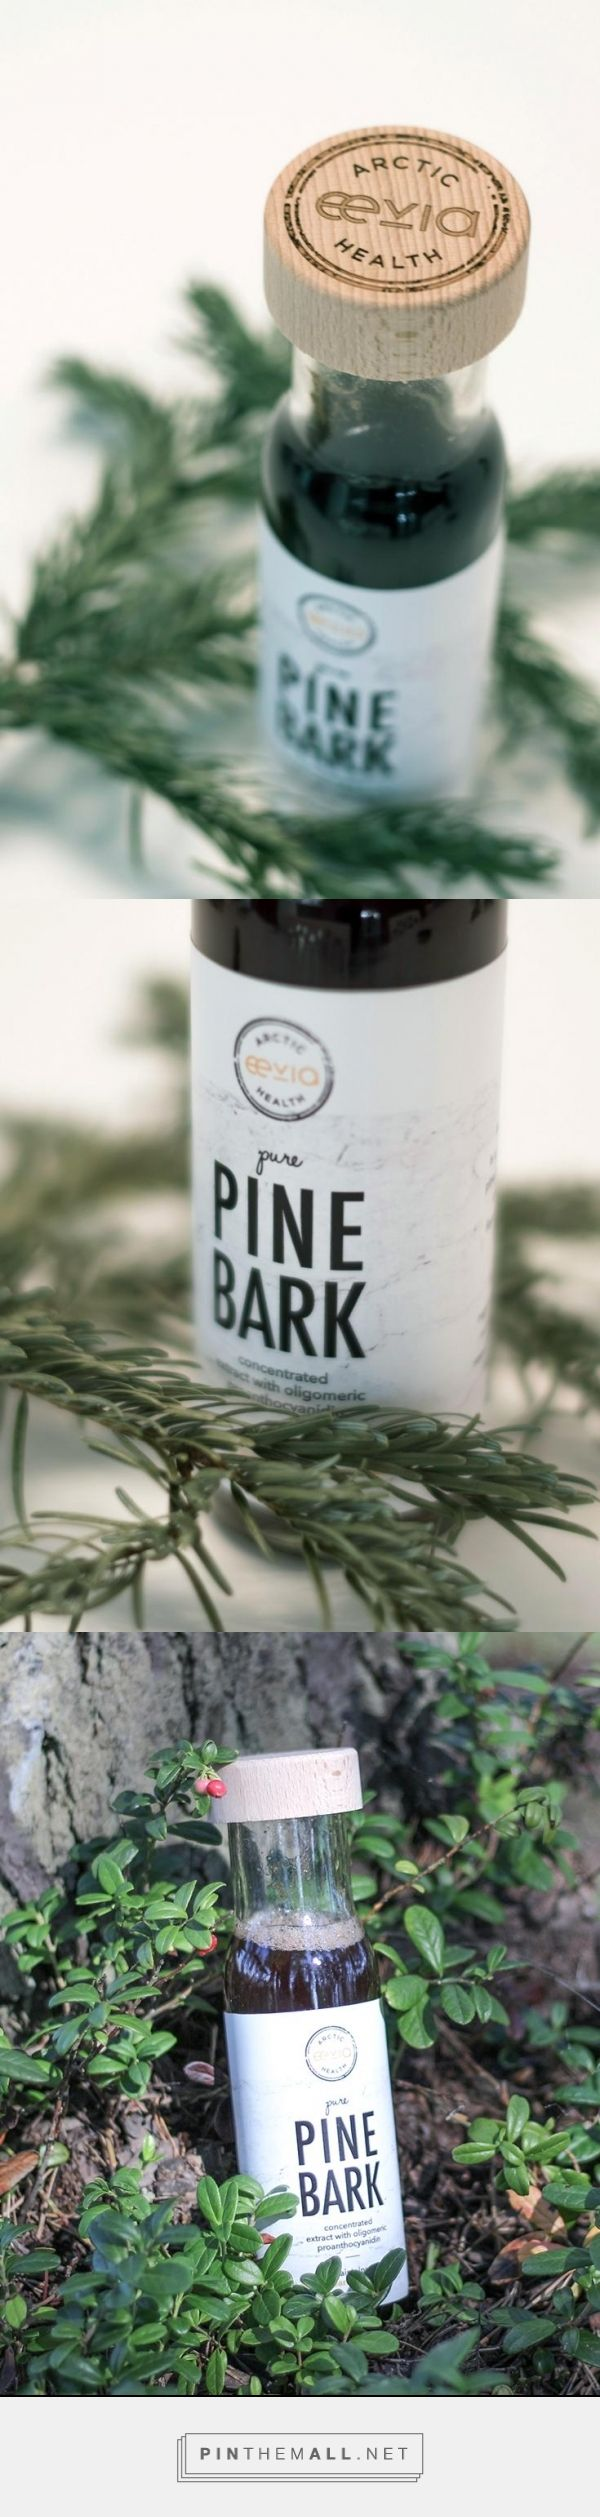 Packaging design - organic & healthy pine bark drink from Eevia